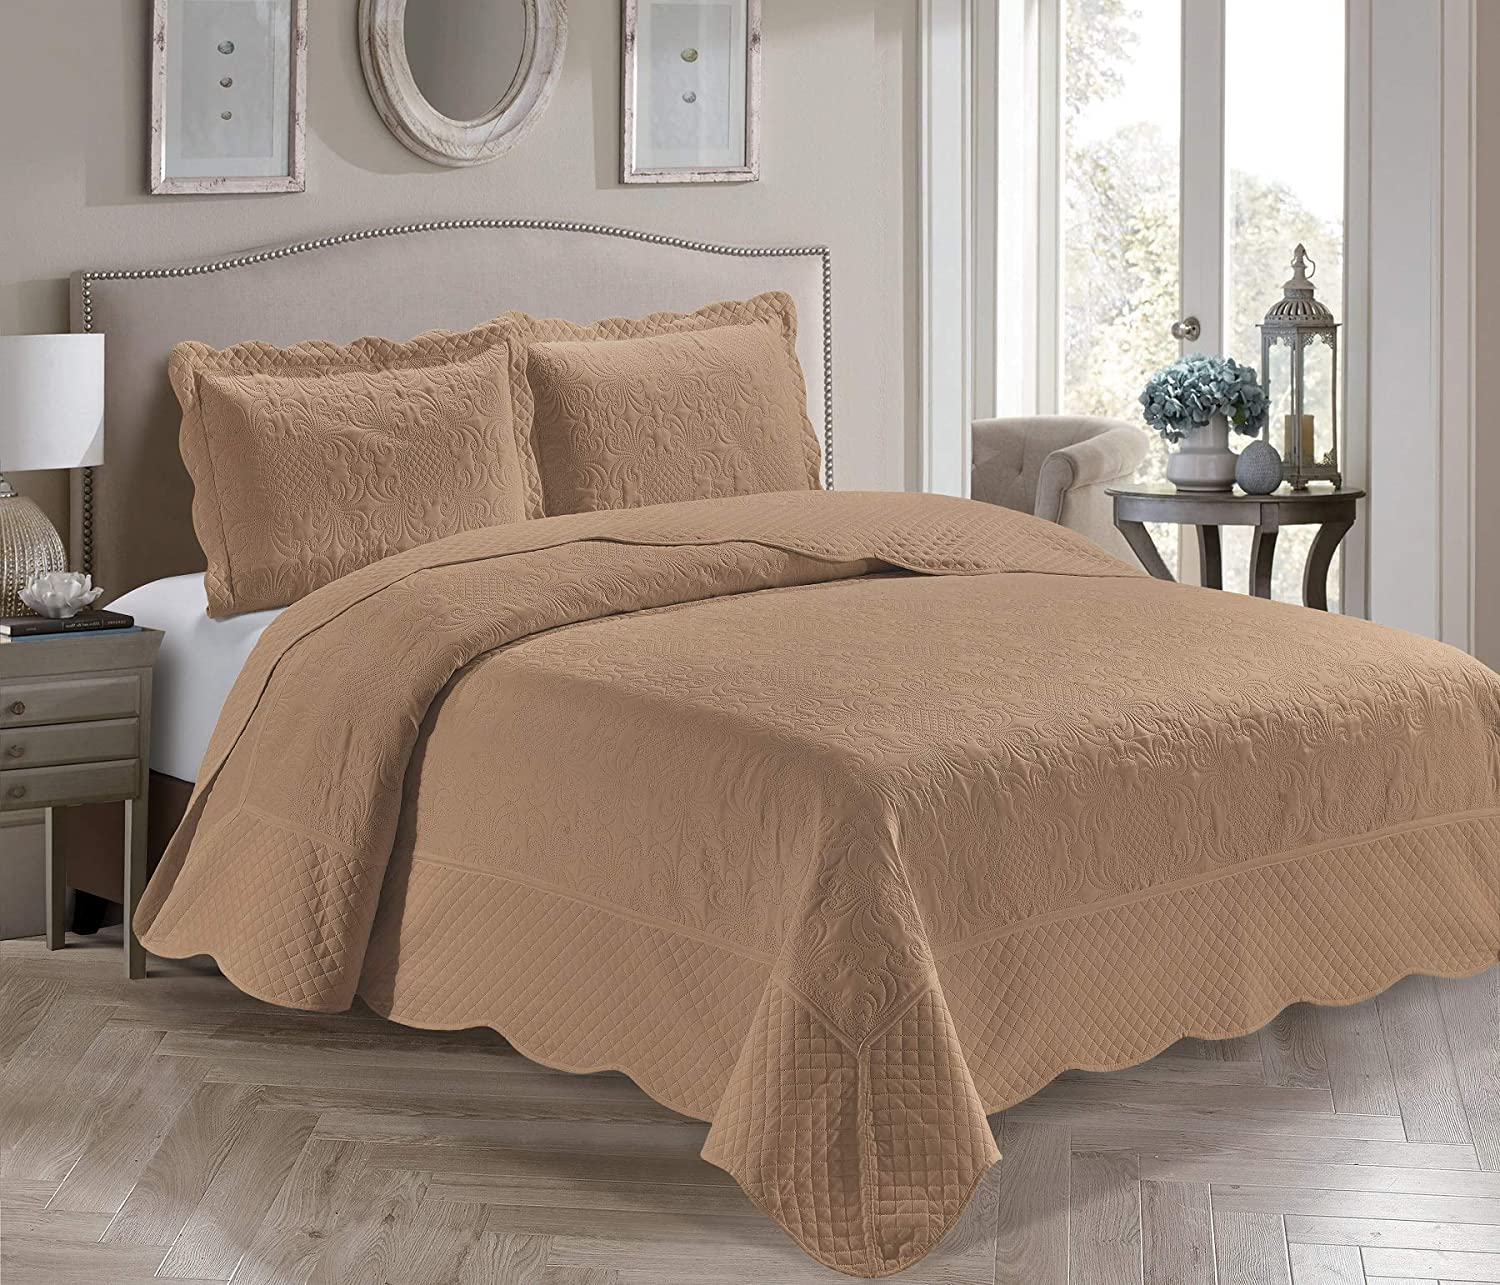 Home Collection 3 Piece King/California King Over Size Embossed Solid Taupe Color Coverlet Bedspread New # Veronica